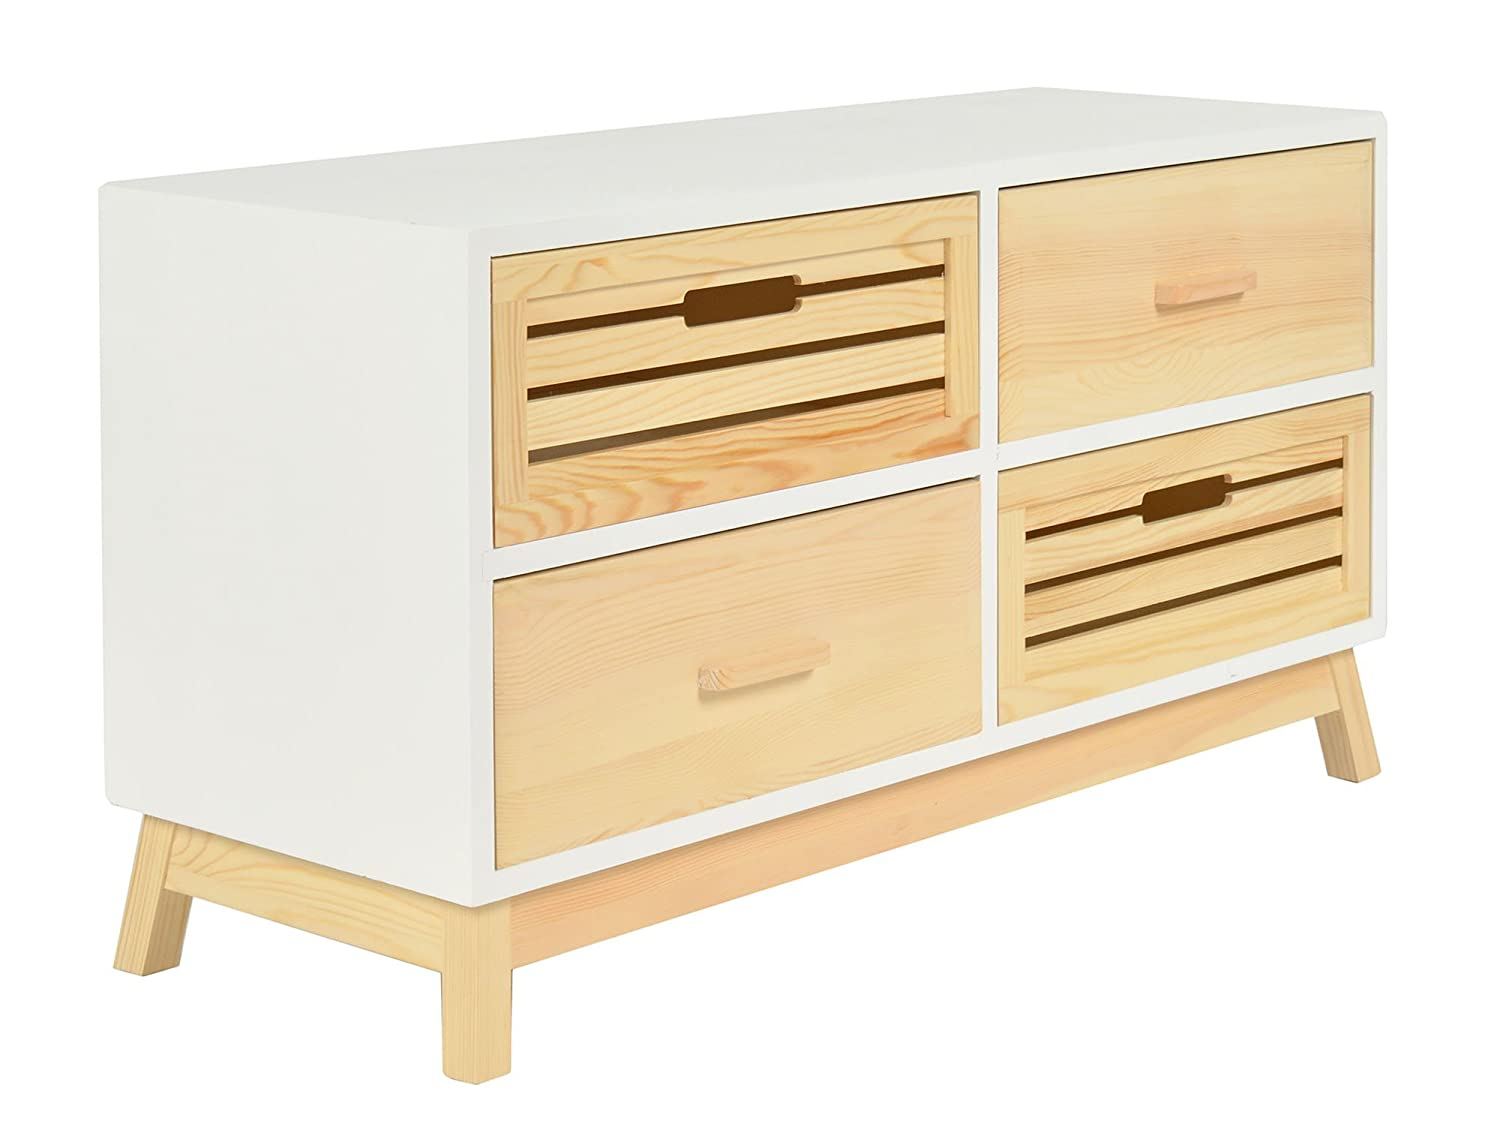 ts-ideen Chest Drawers Cabinet in White Natural Pine wood 4 drawers